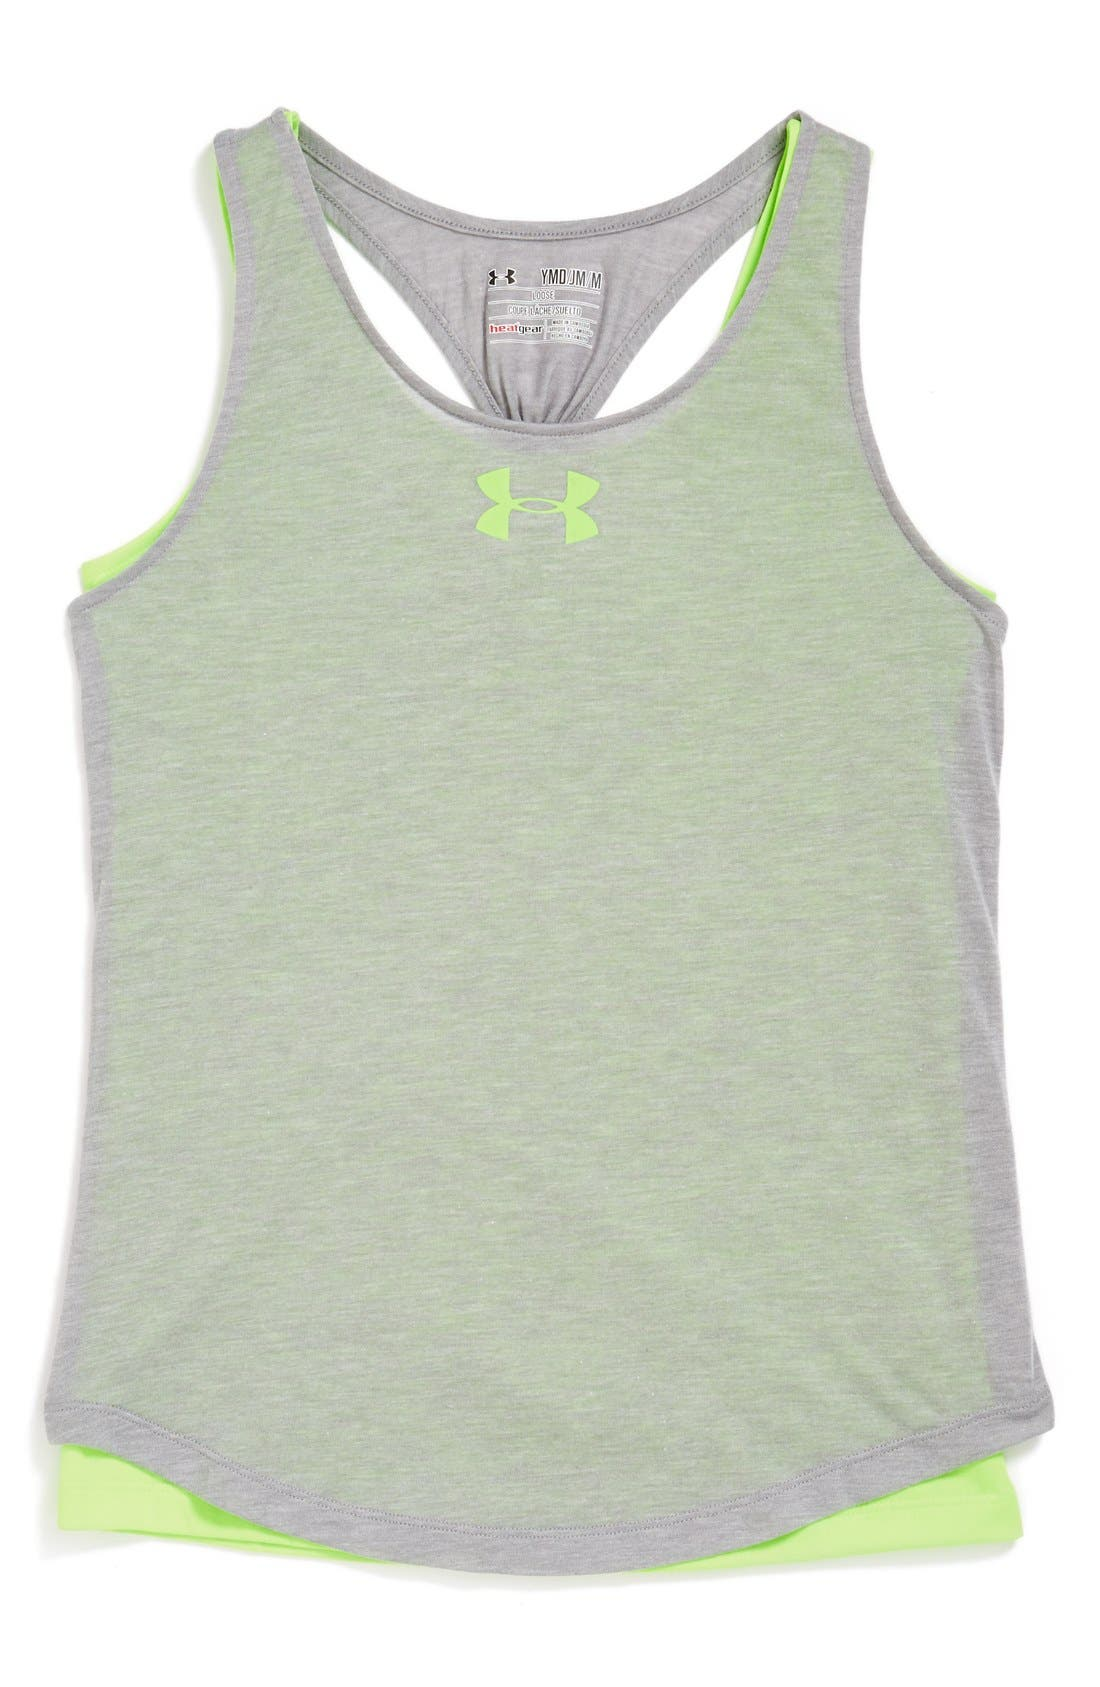 Alternate Image 1 Selected - Under Armour 'Double the Fun' Tank Top (Big Girls)